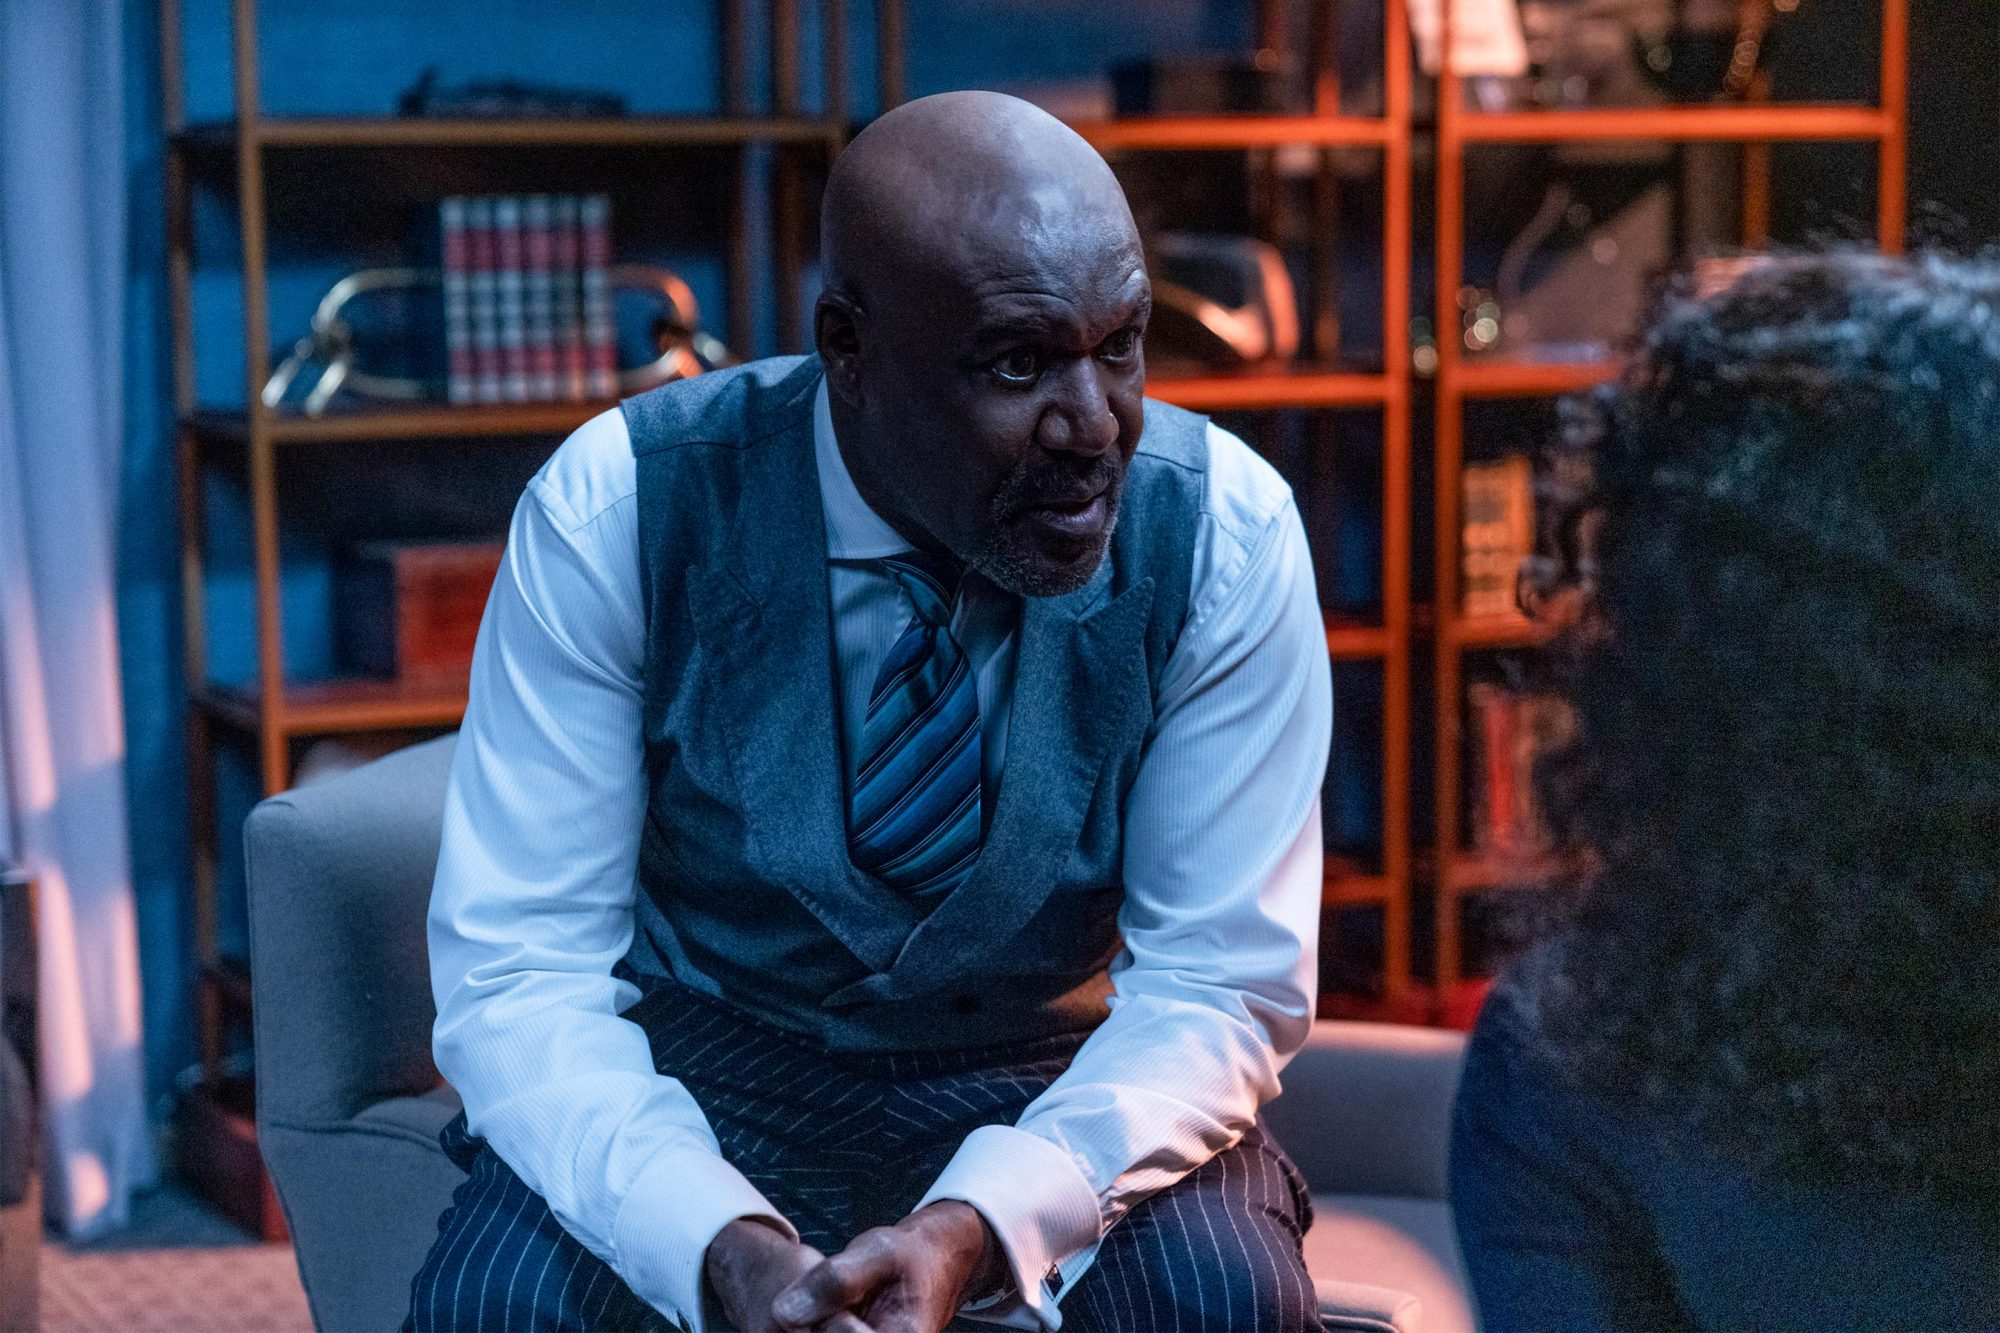 ÒThe One About the End of the WorldÓ -- Episode 310 -- Pictured: Delroy Lindo as Adrian Boseman of the CBS All Access series THE GOOD FIGHT. Photo Cr: Patrick Harbron/CBS ©2019 CBS Interactive, Inc. All Rights Reserved.